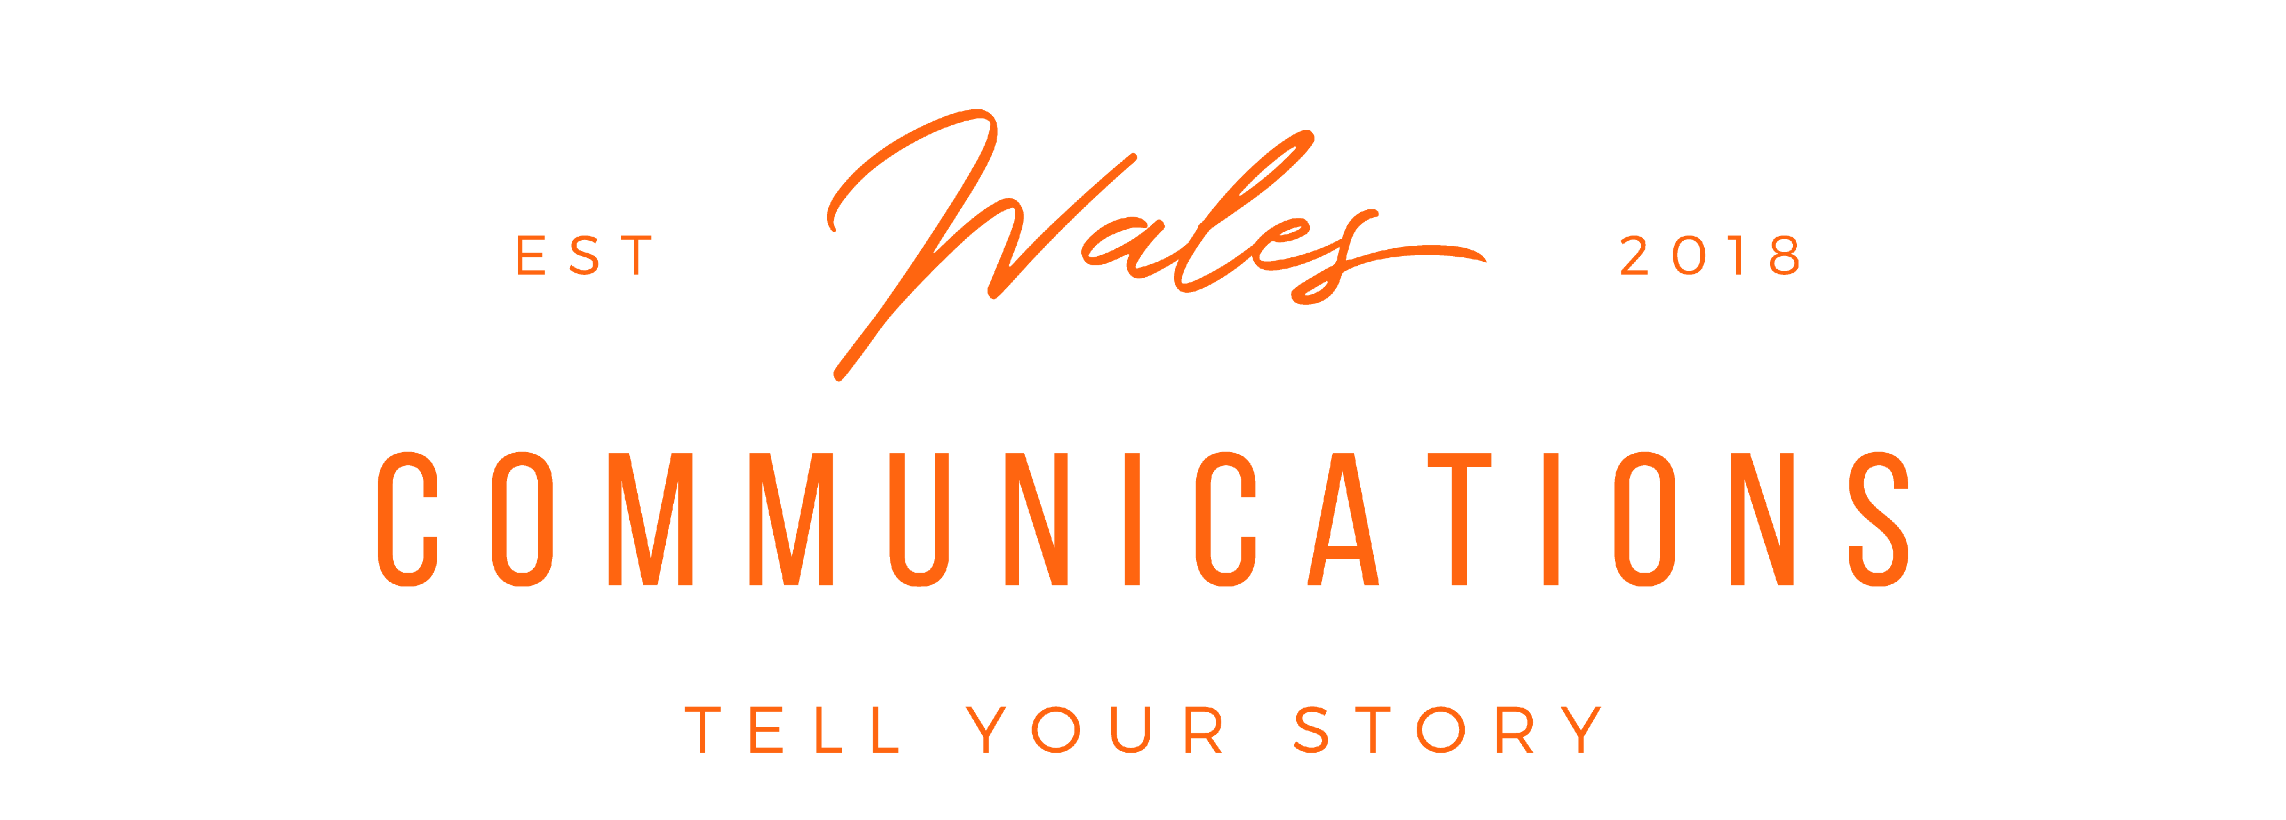 Wales Communications